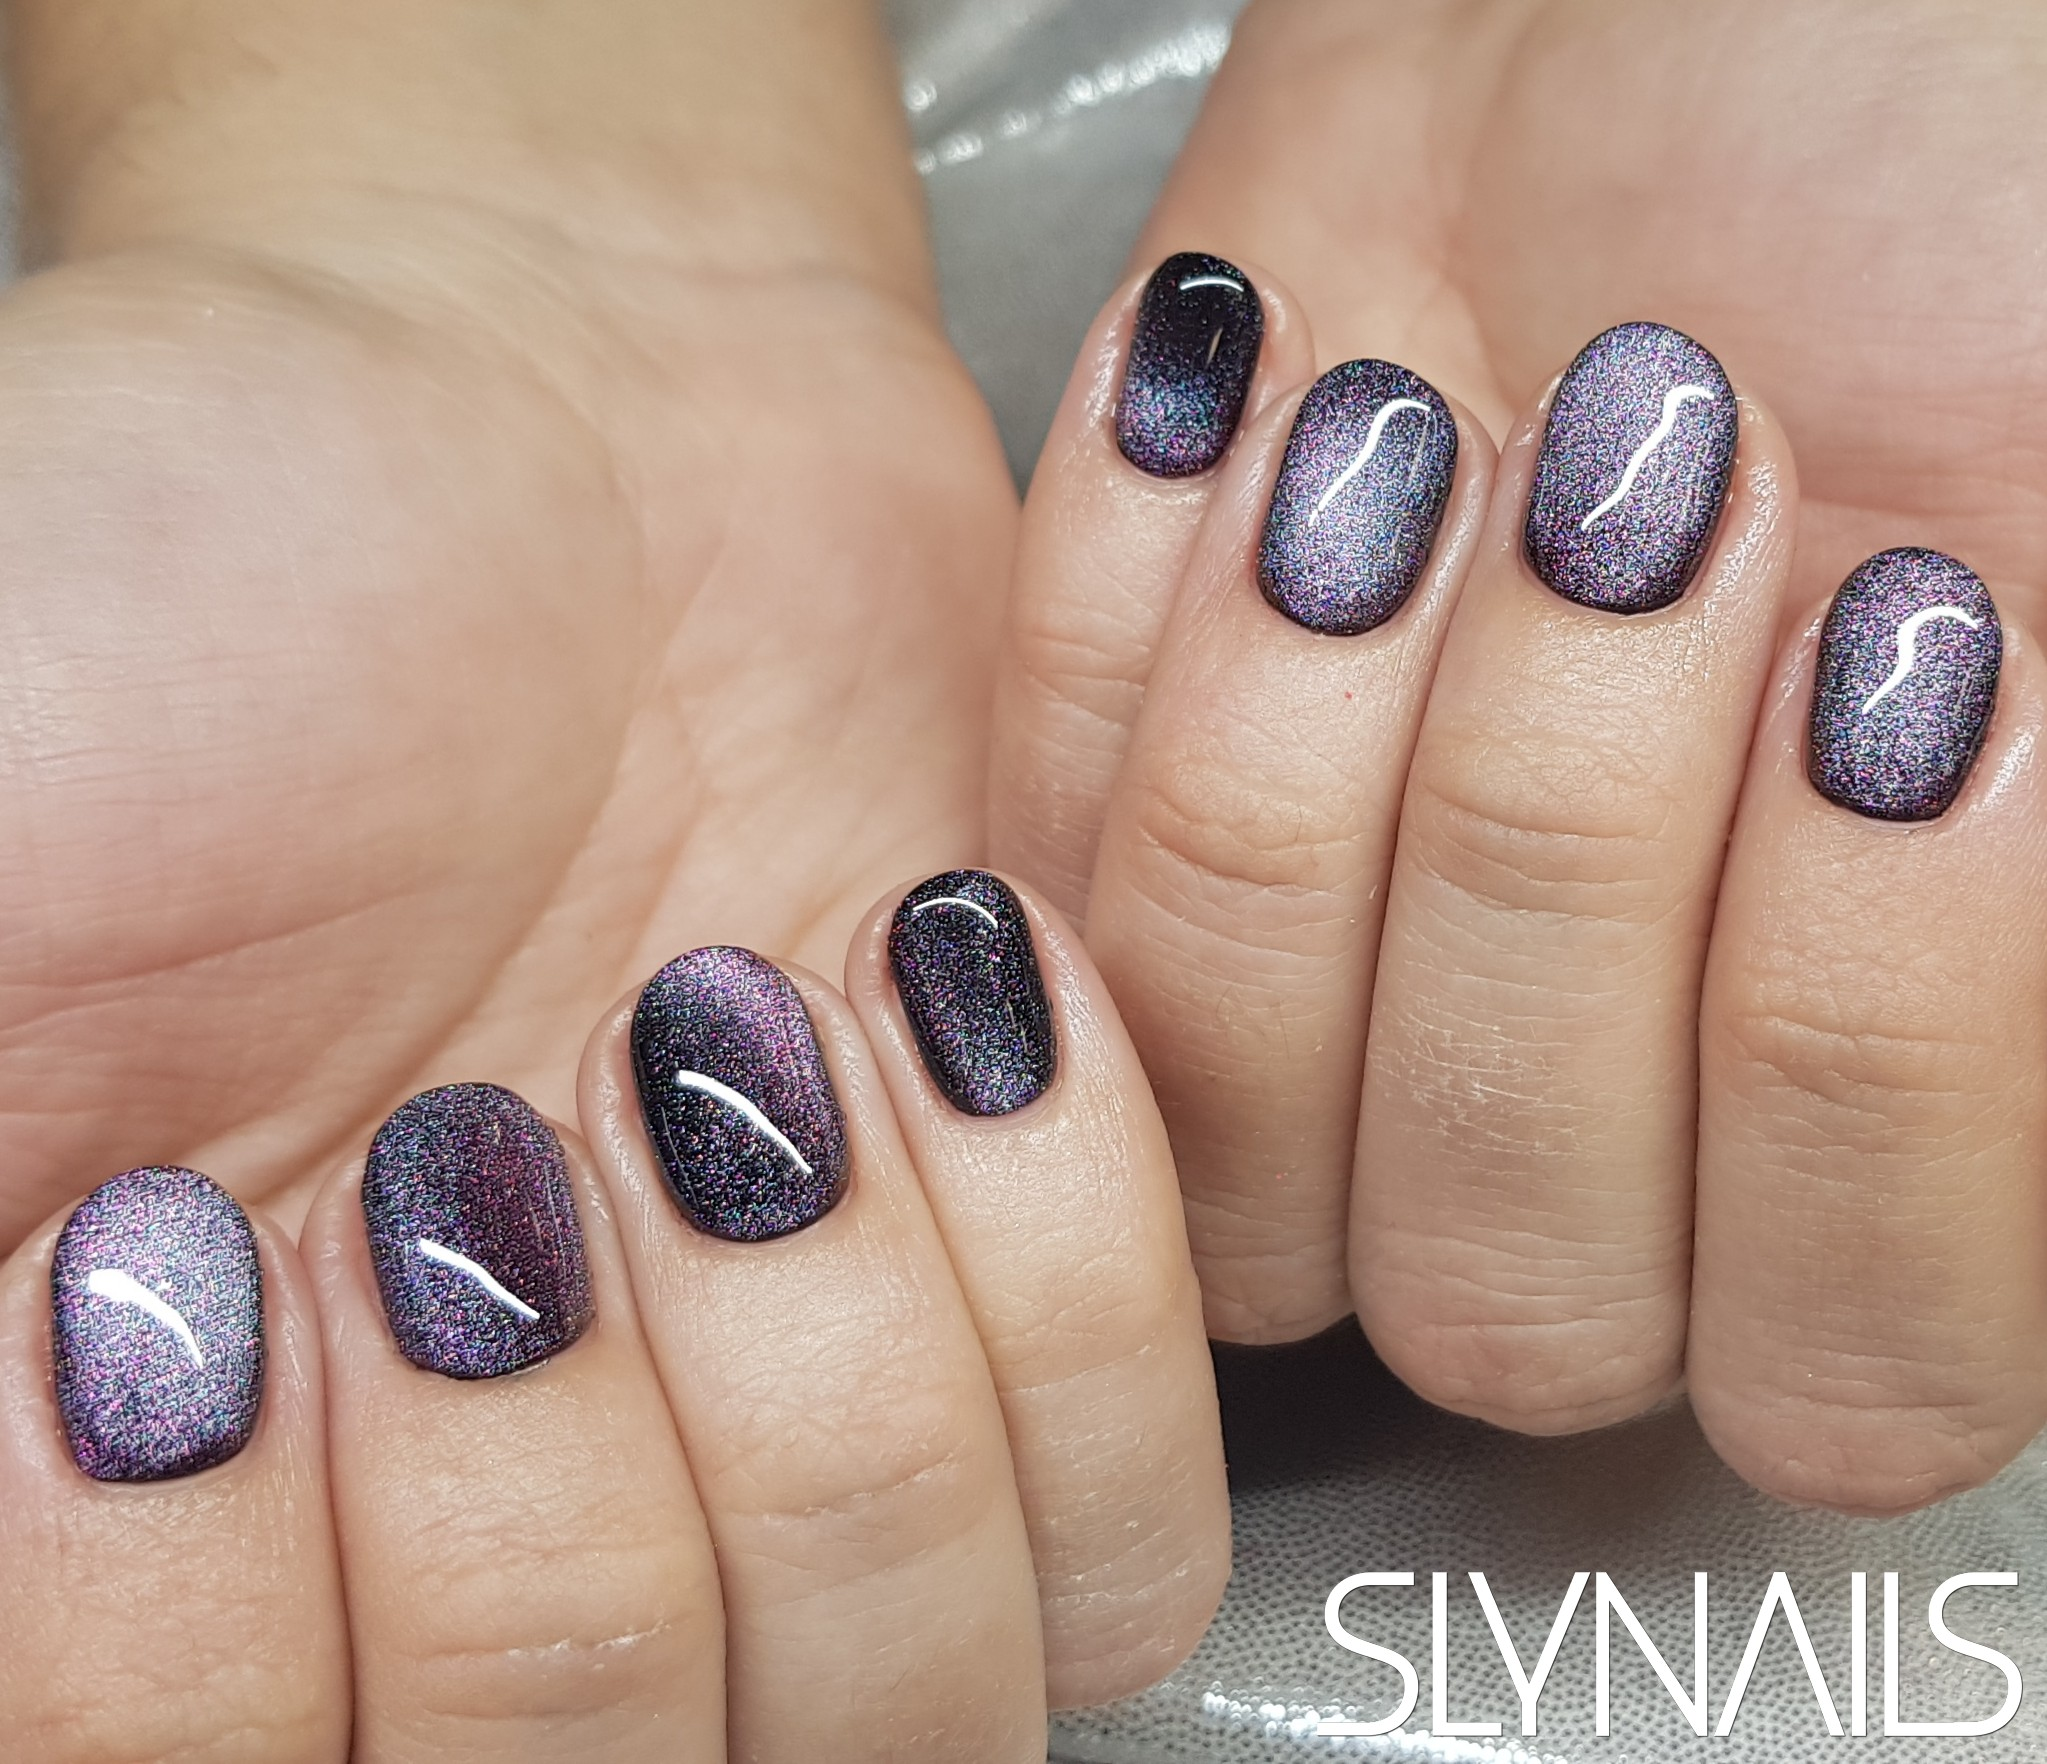 Gel-lac (gel polish), Black, Magnetic, Purple, Silver, Rounded, One color